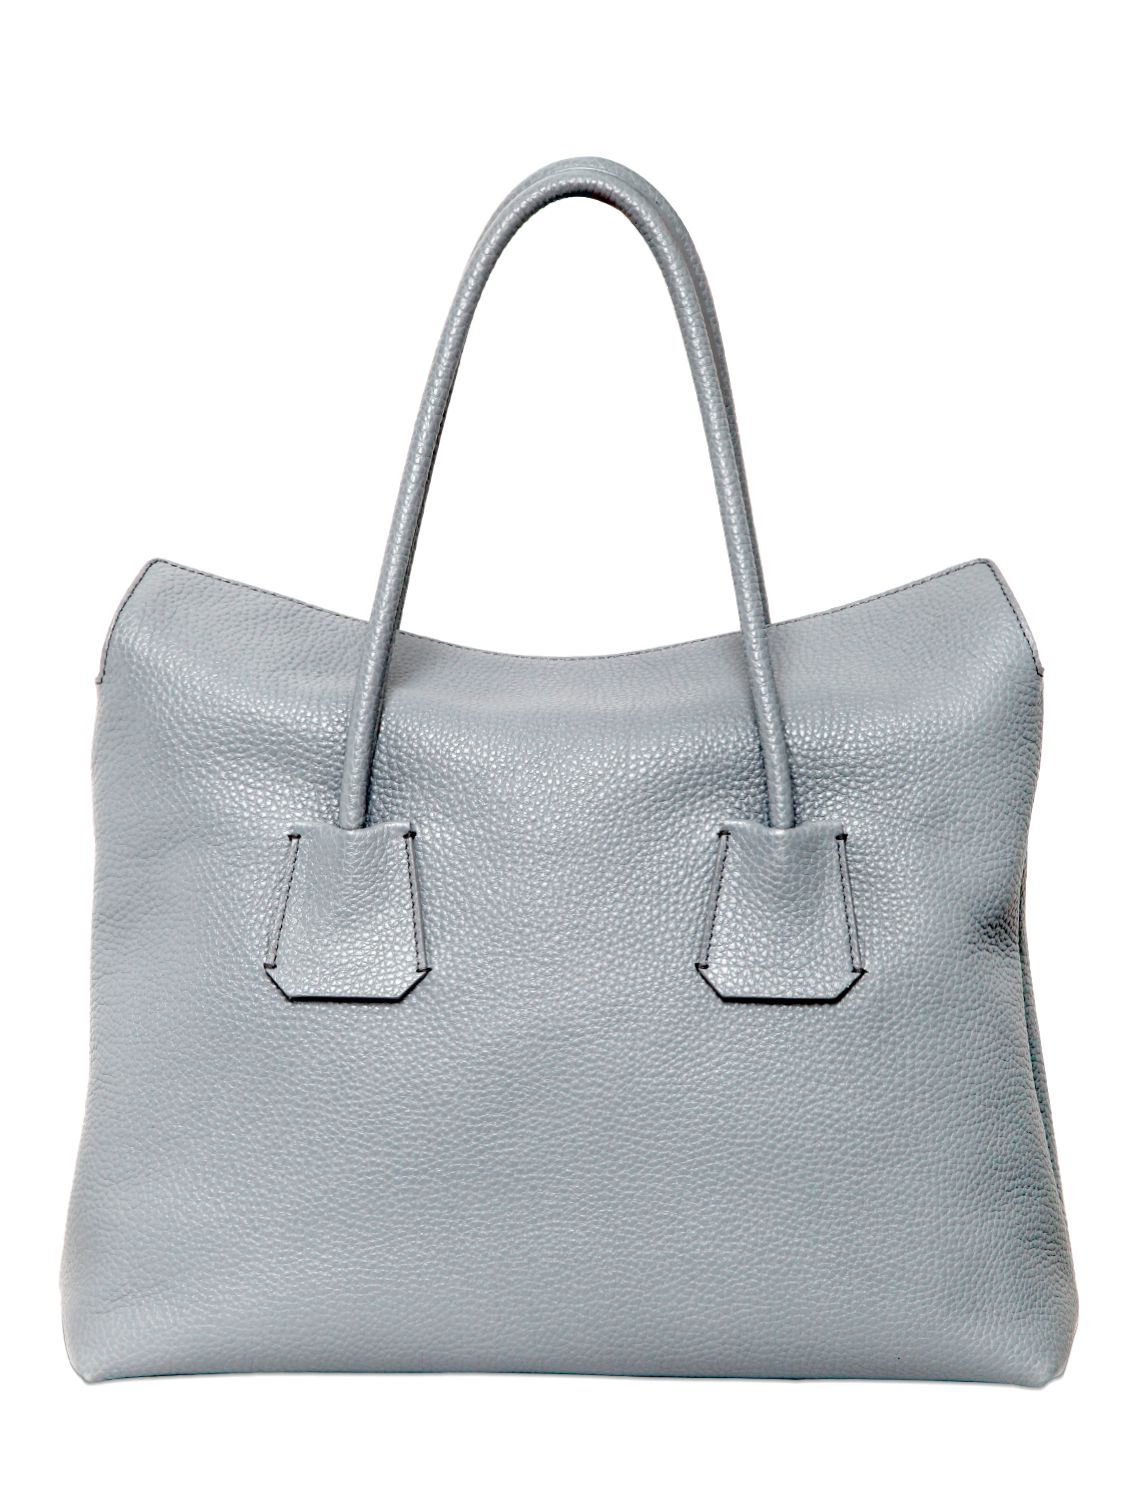 09e442e8b8145 Lyst - Burberry Baynard Grained Leather Top Handle Bag in Gray